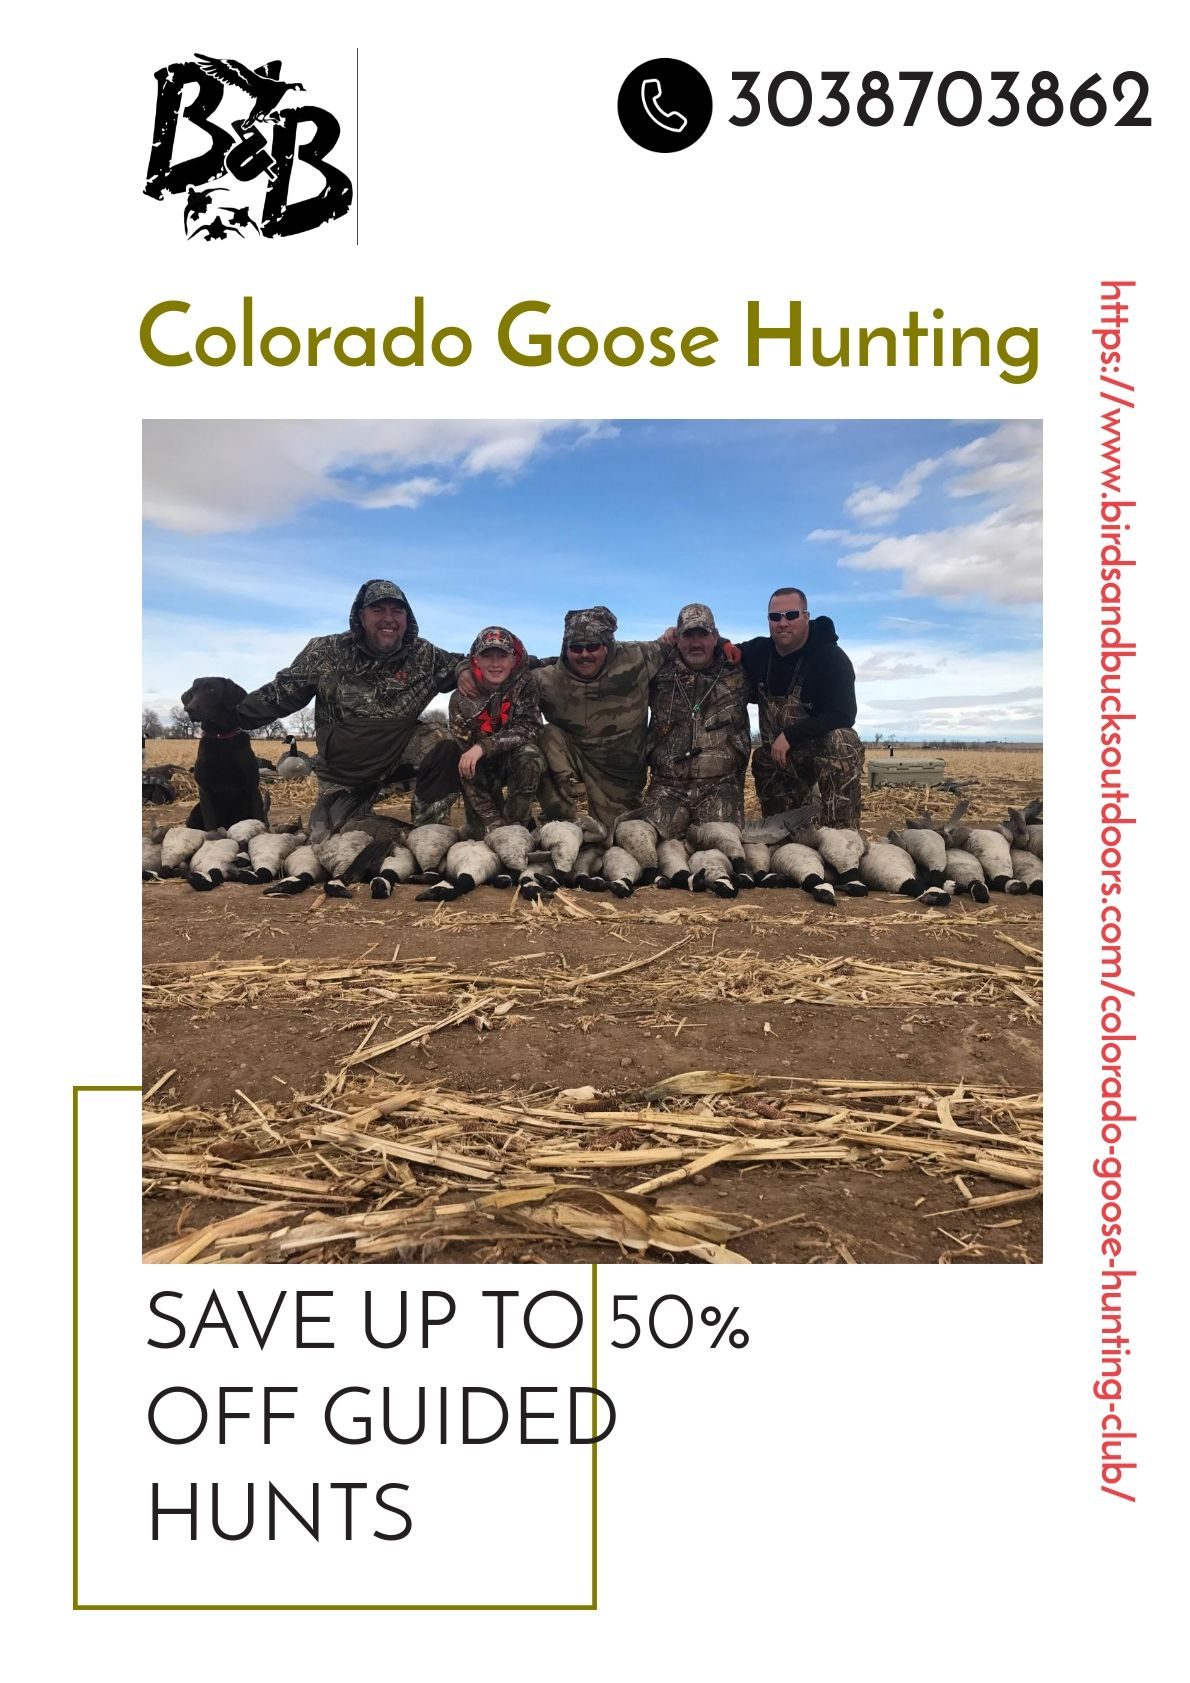 Colorado Goose Hunting Birds and Bucks Outfitters is the